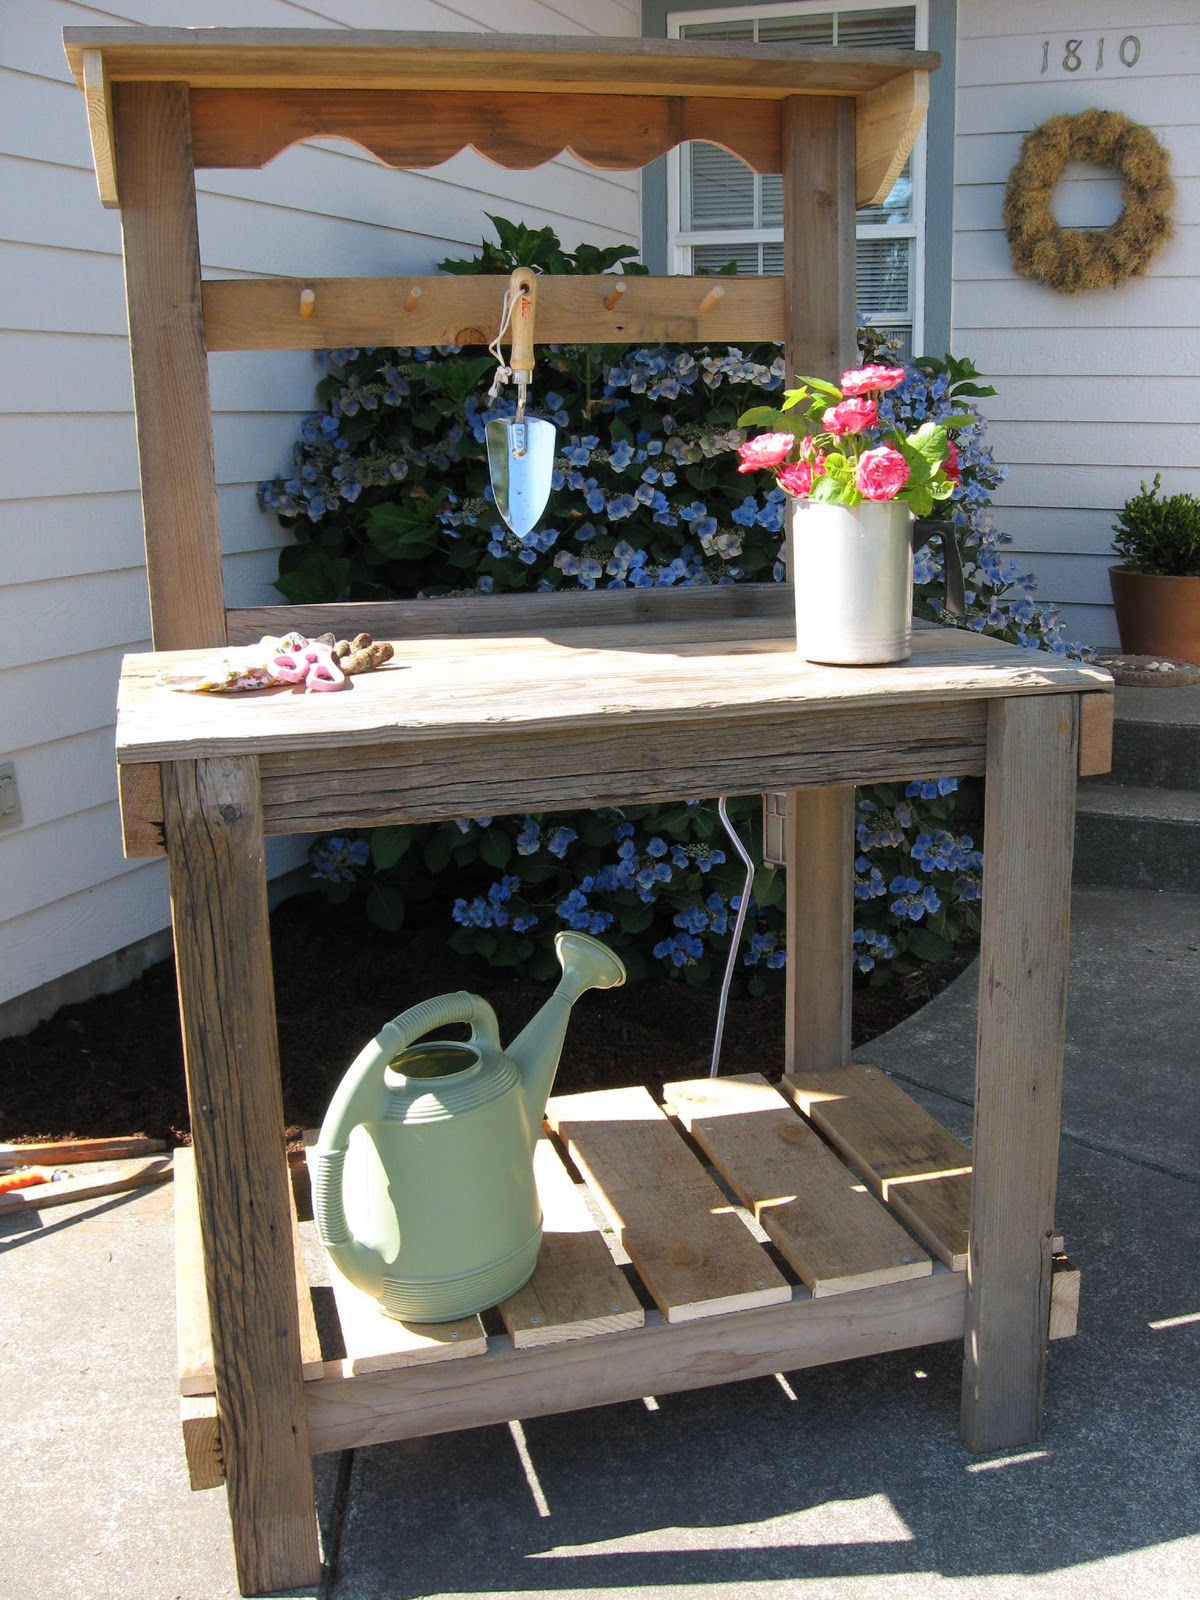 Rustic Potting Bench 28 Images Xxx 9074 1332614379 1 Jpg Rustic Potting Bench With Window